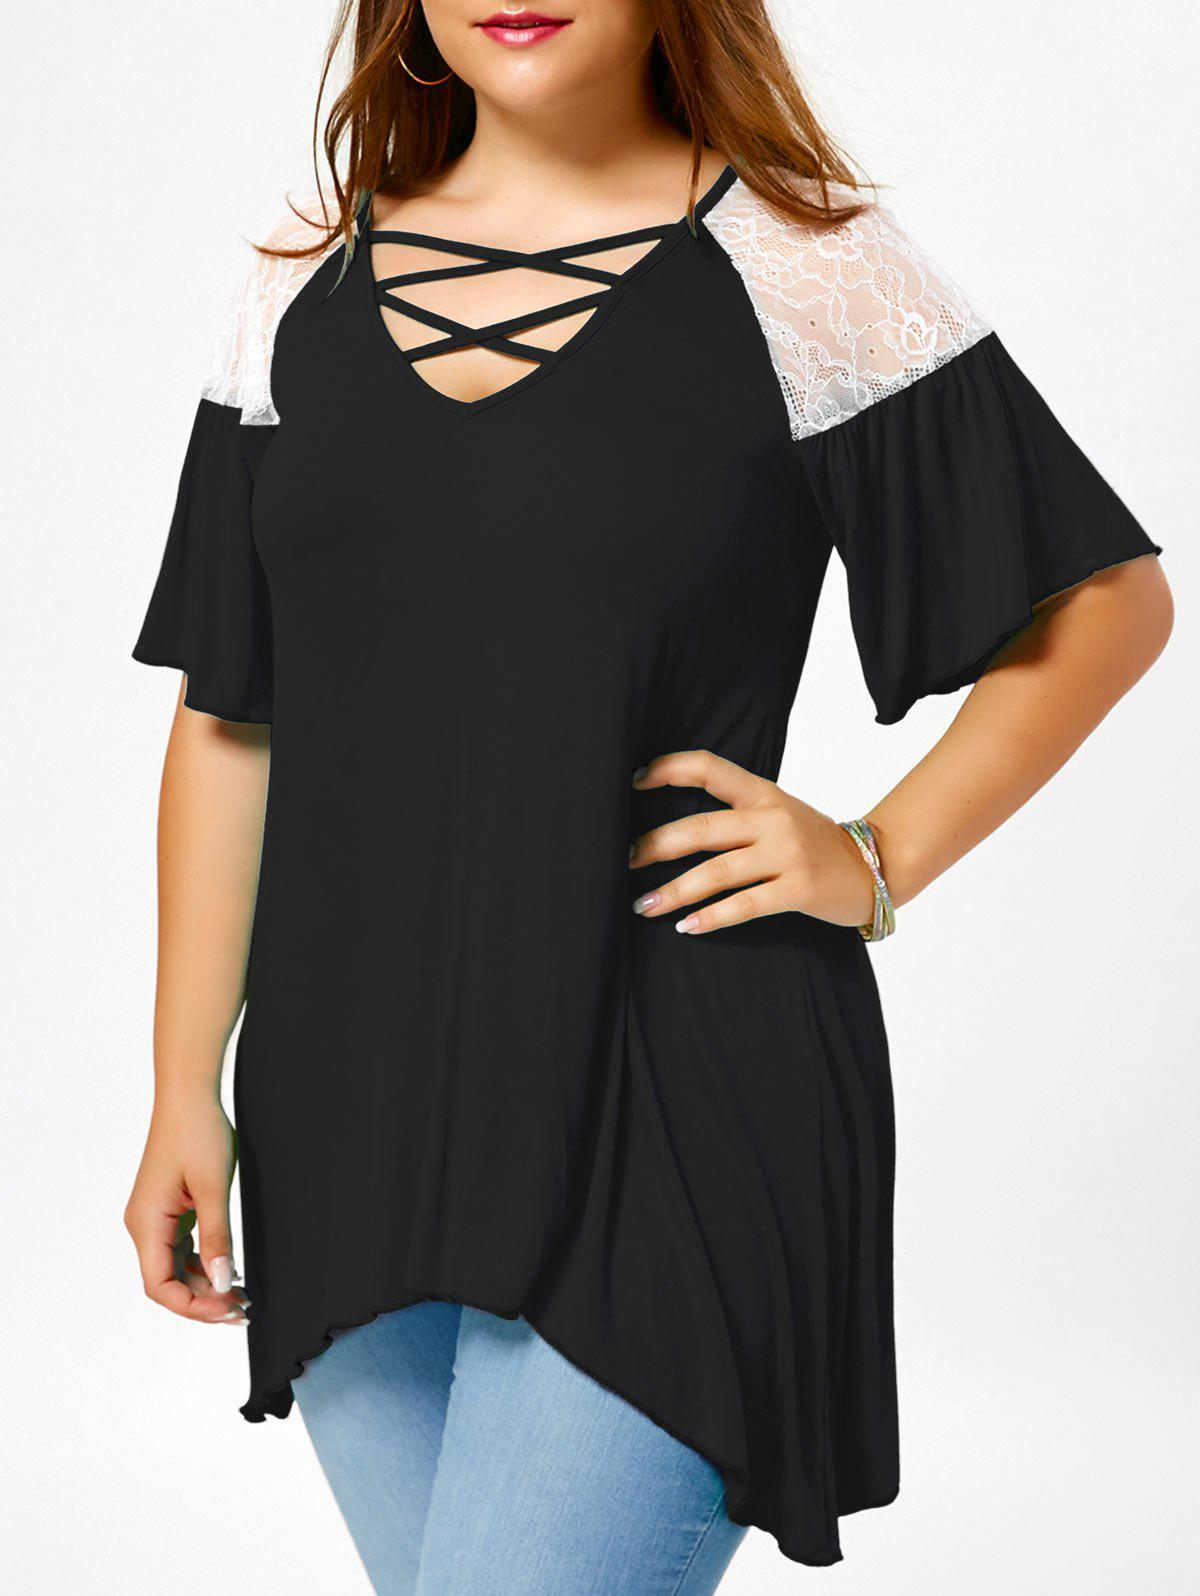 Criss Cross Drop Shoulder Plus Size Tunic T-ShirtWOMEN<br><br>Size: XL; Color: WHITE AND BLACK; Material: Polyester,Spandex; Shirt Length: Regular; Sleeve Length: Half; Collar: V-Neck; Style: Casual; Season: Fall,Spring,Summer; Sleeve Type: Flare Sleeve; Embellishment: Lace; Pattern Type: Solid; Elasticity: Elastic; Weight: 0.2600kg; Package Contents: 1 x T-Shirt;